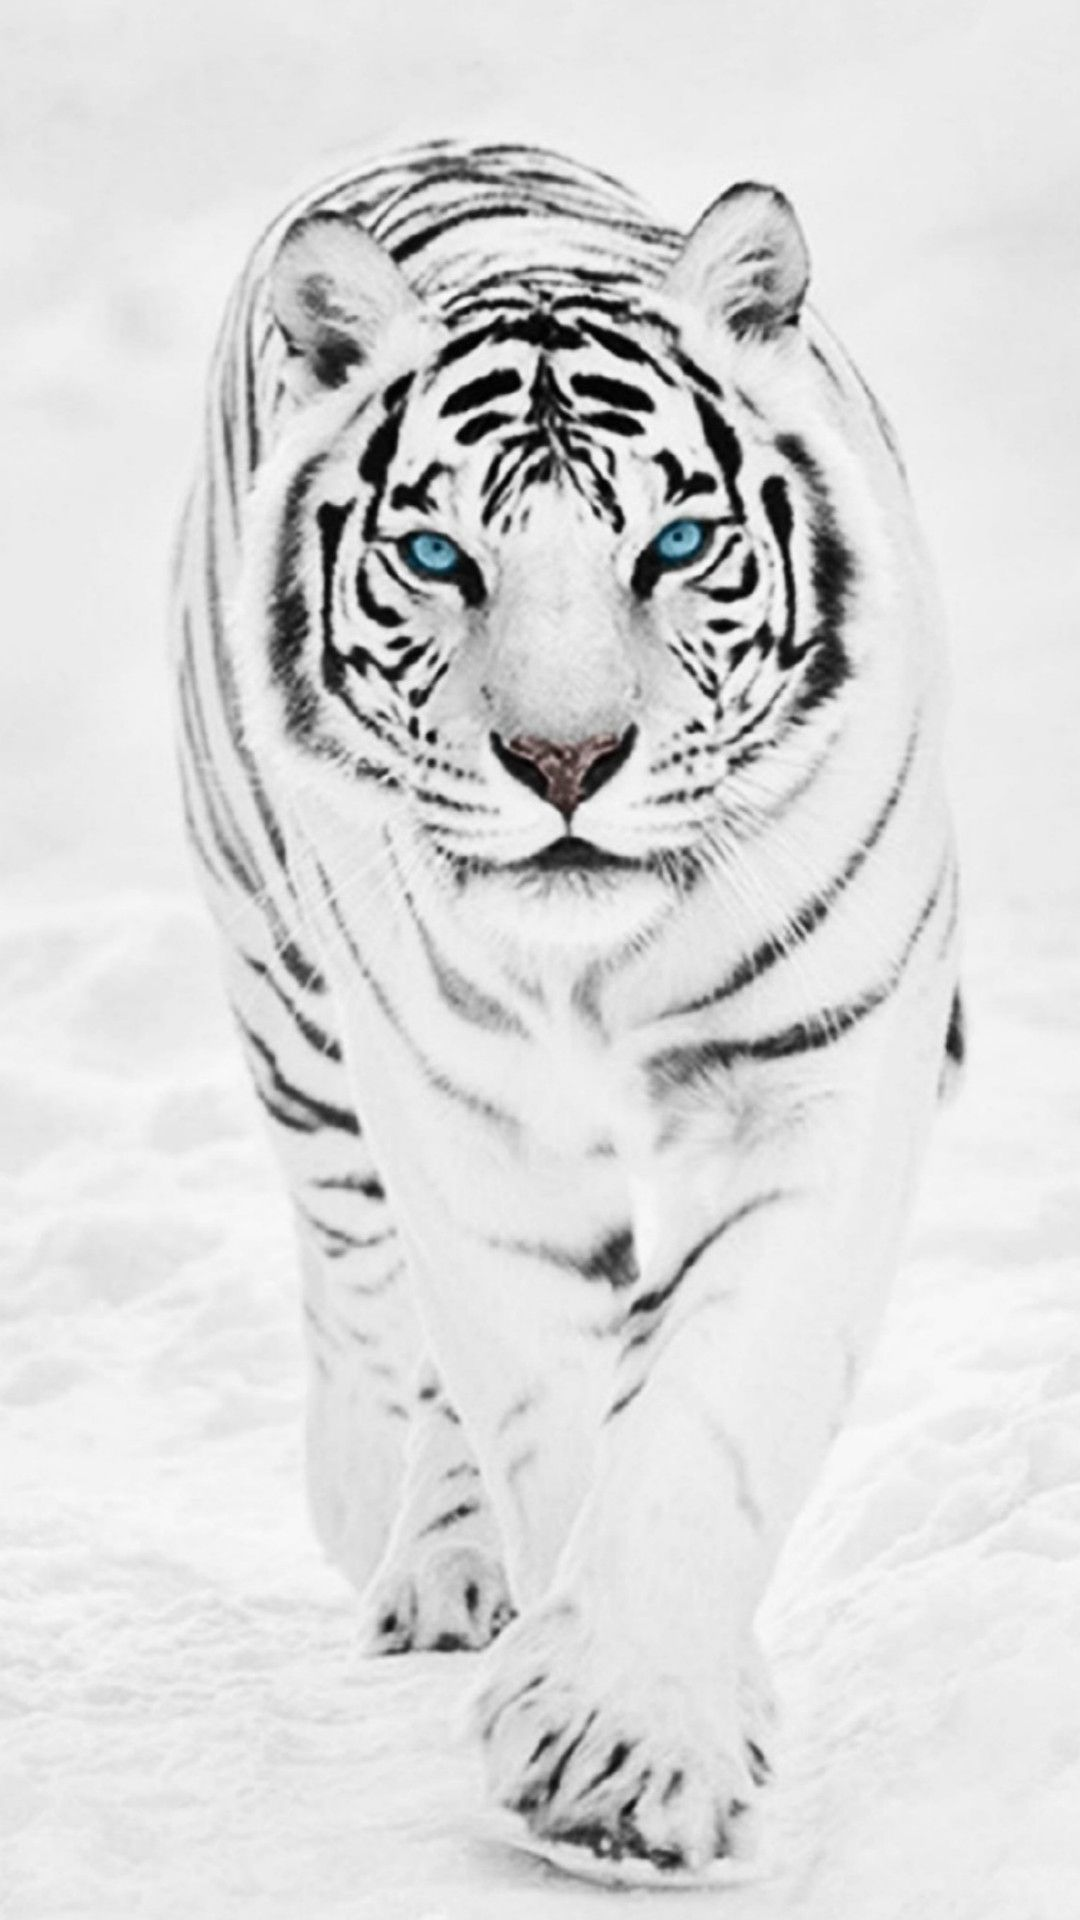 Animal Photography White Tigers Tattoo White Tigers Tattoo White Tigers Head White Tigers Makeup W In 2020 Tiger Pictures Tiger Wallpaper White Tiger Pictures